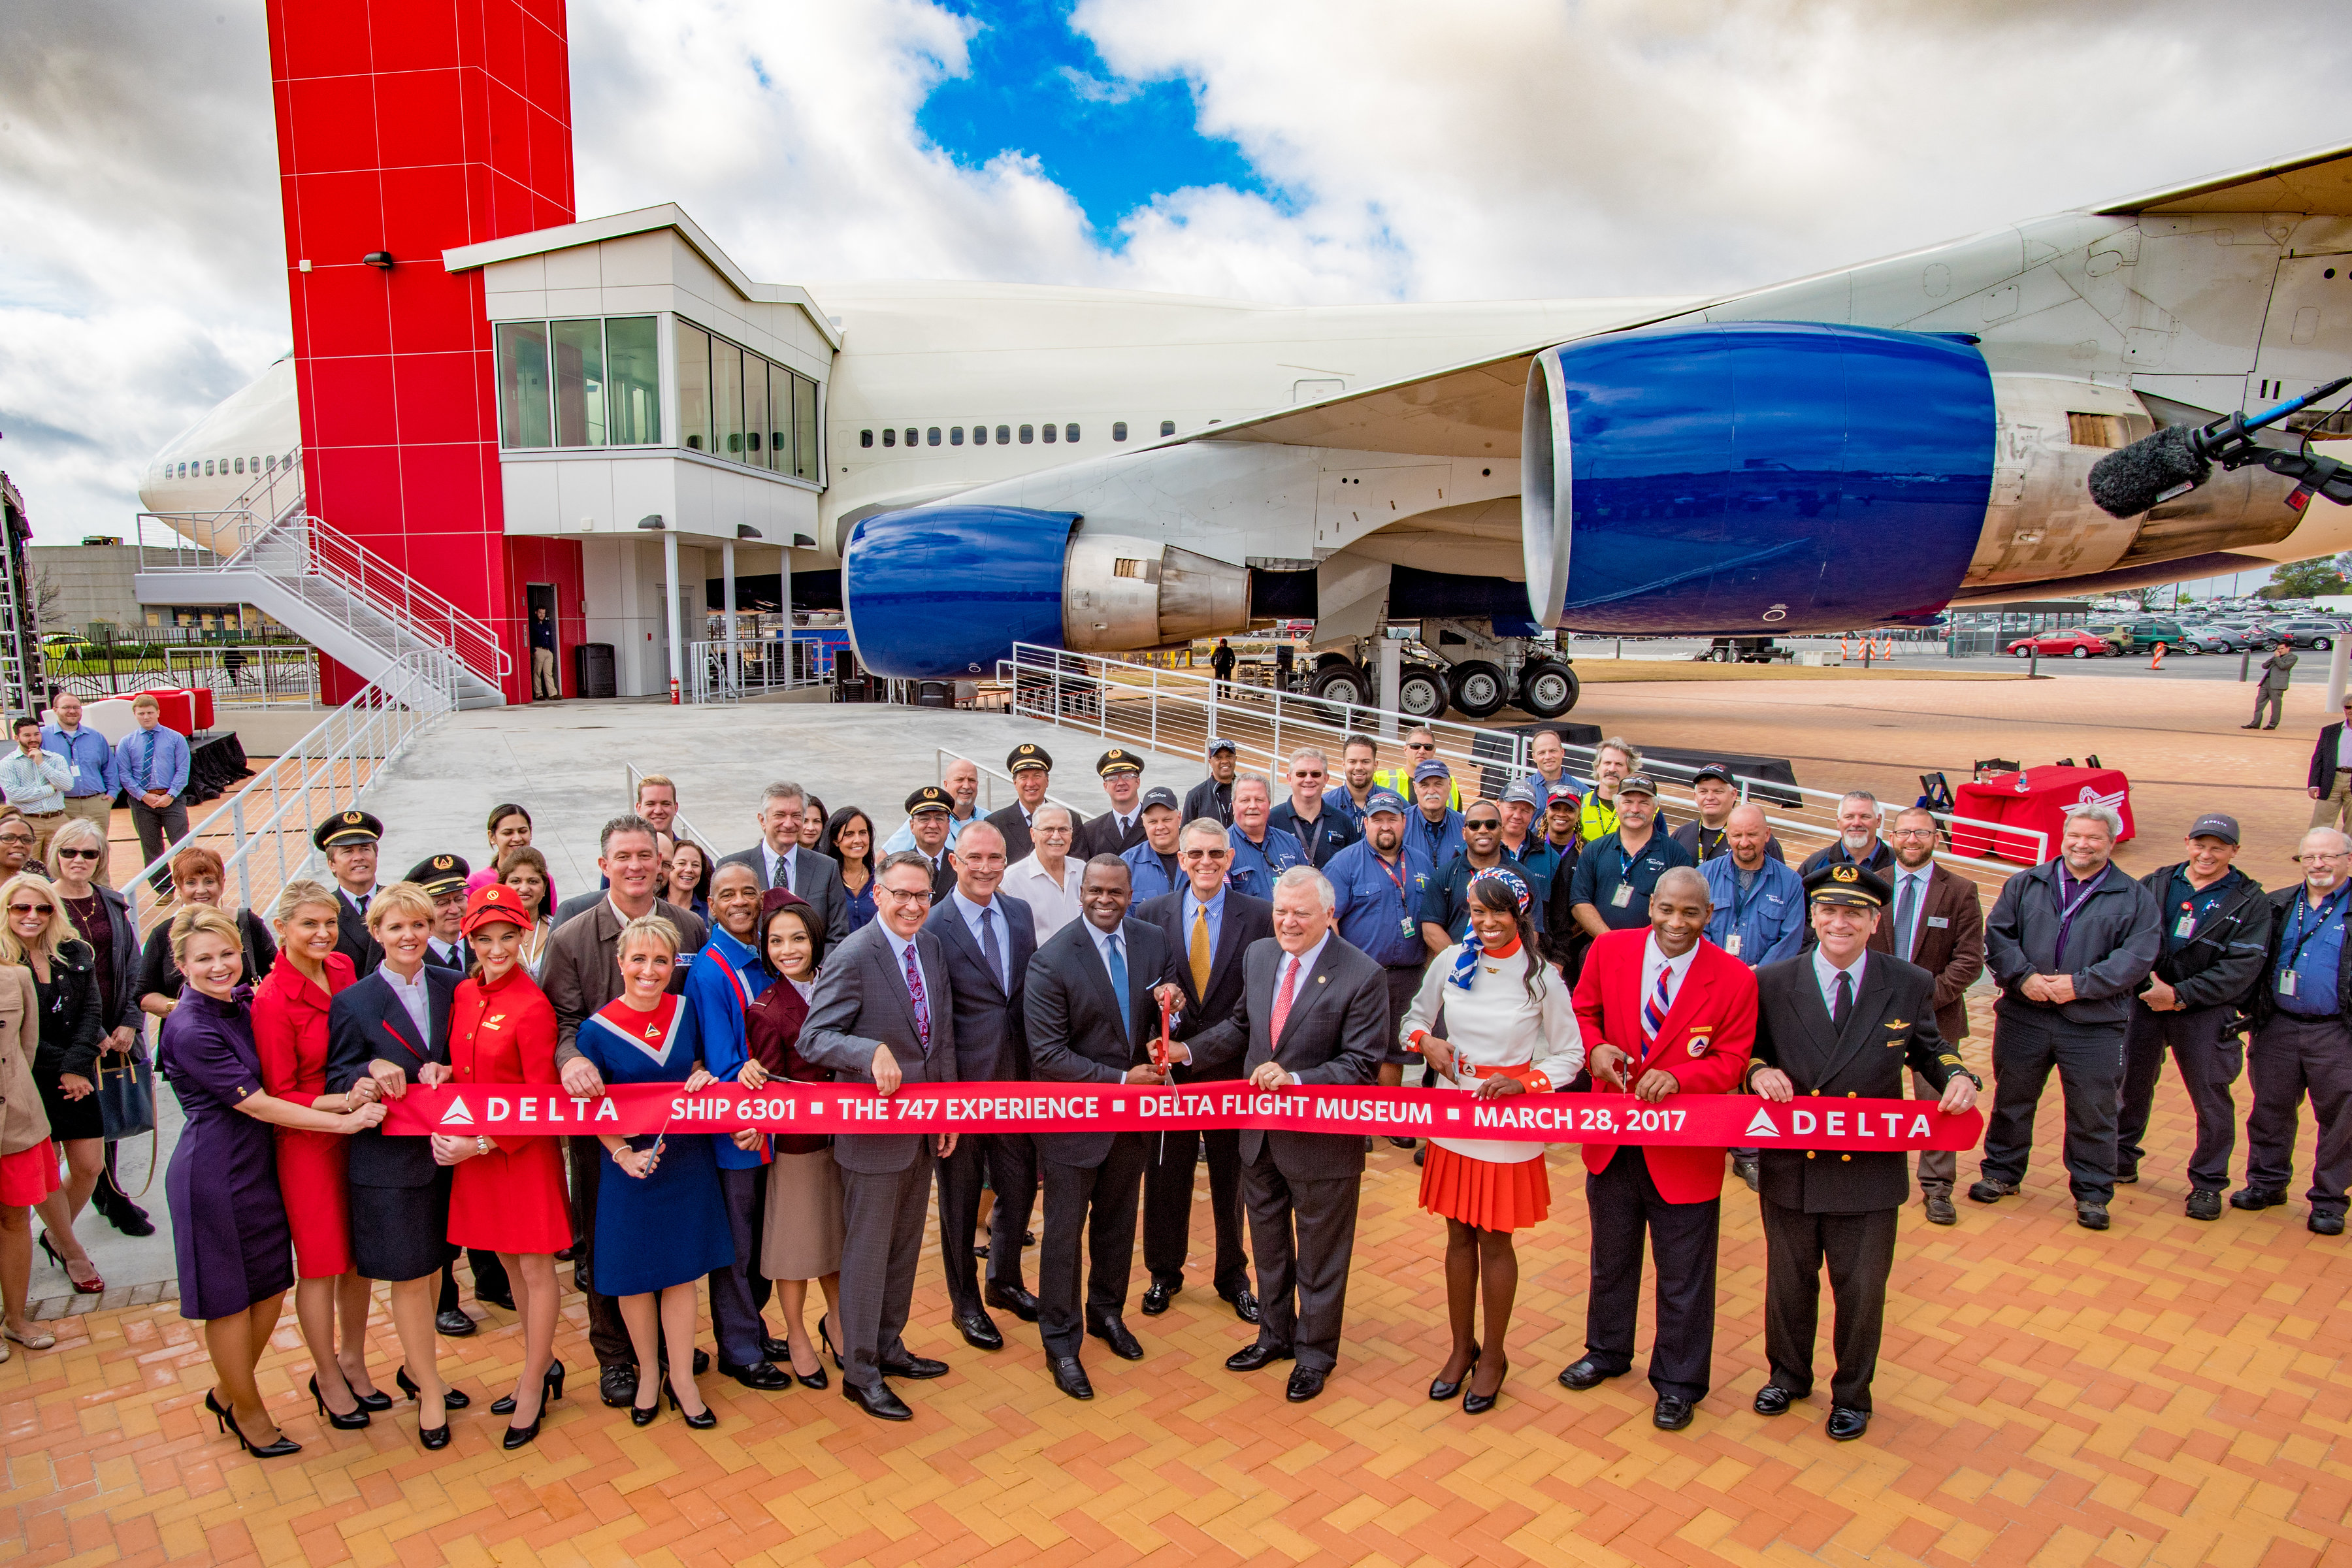 Ribbon cutting at 747 Experience exhibit